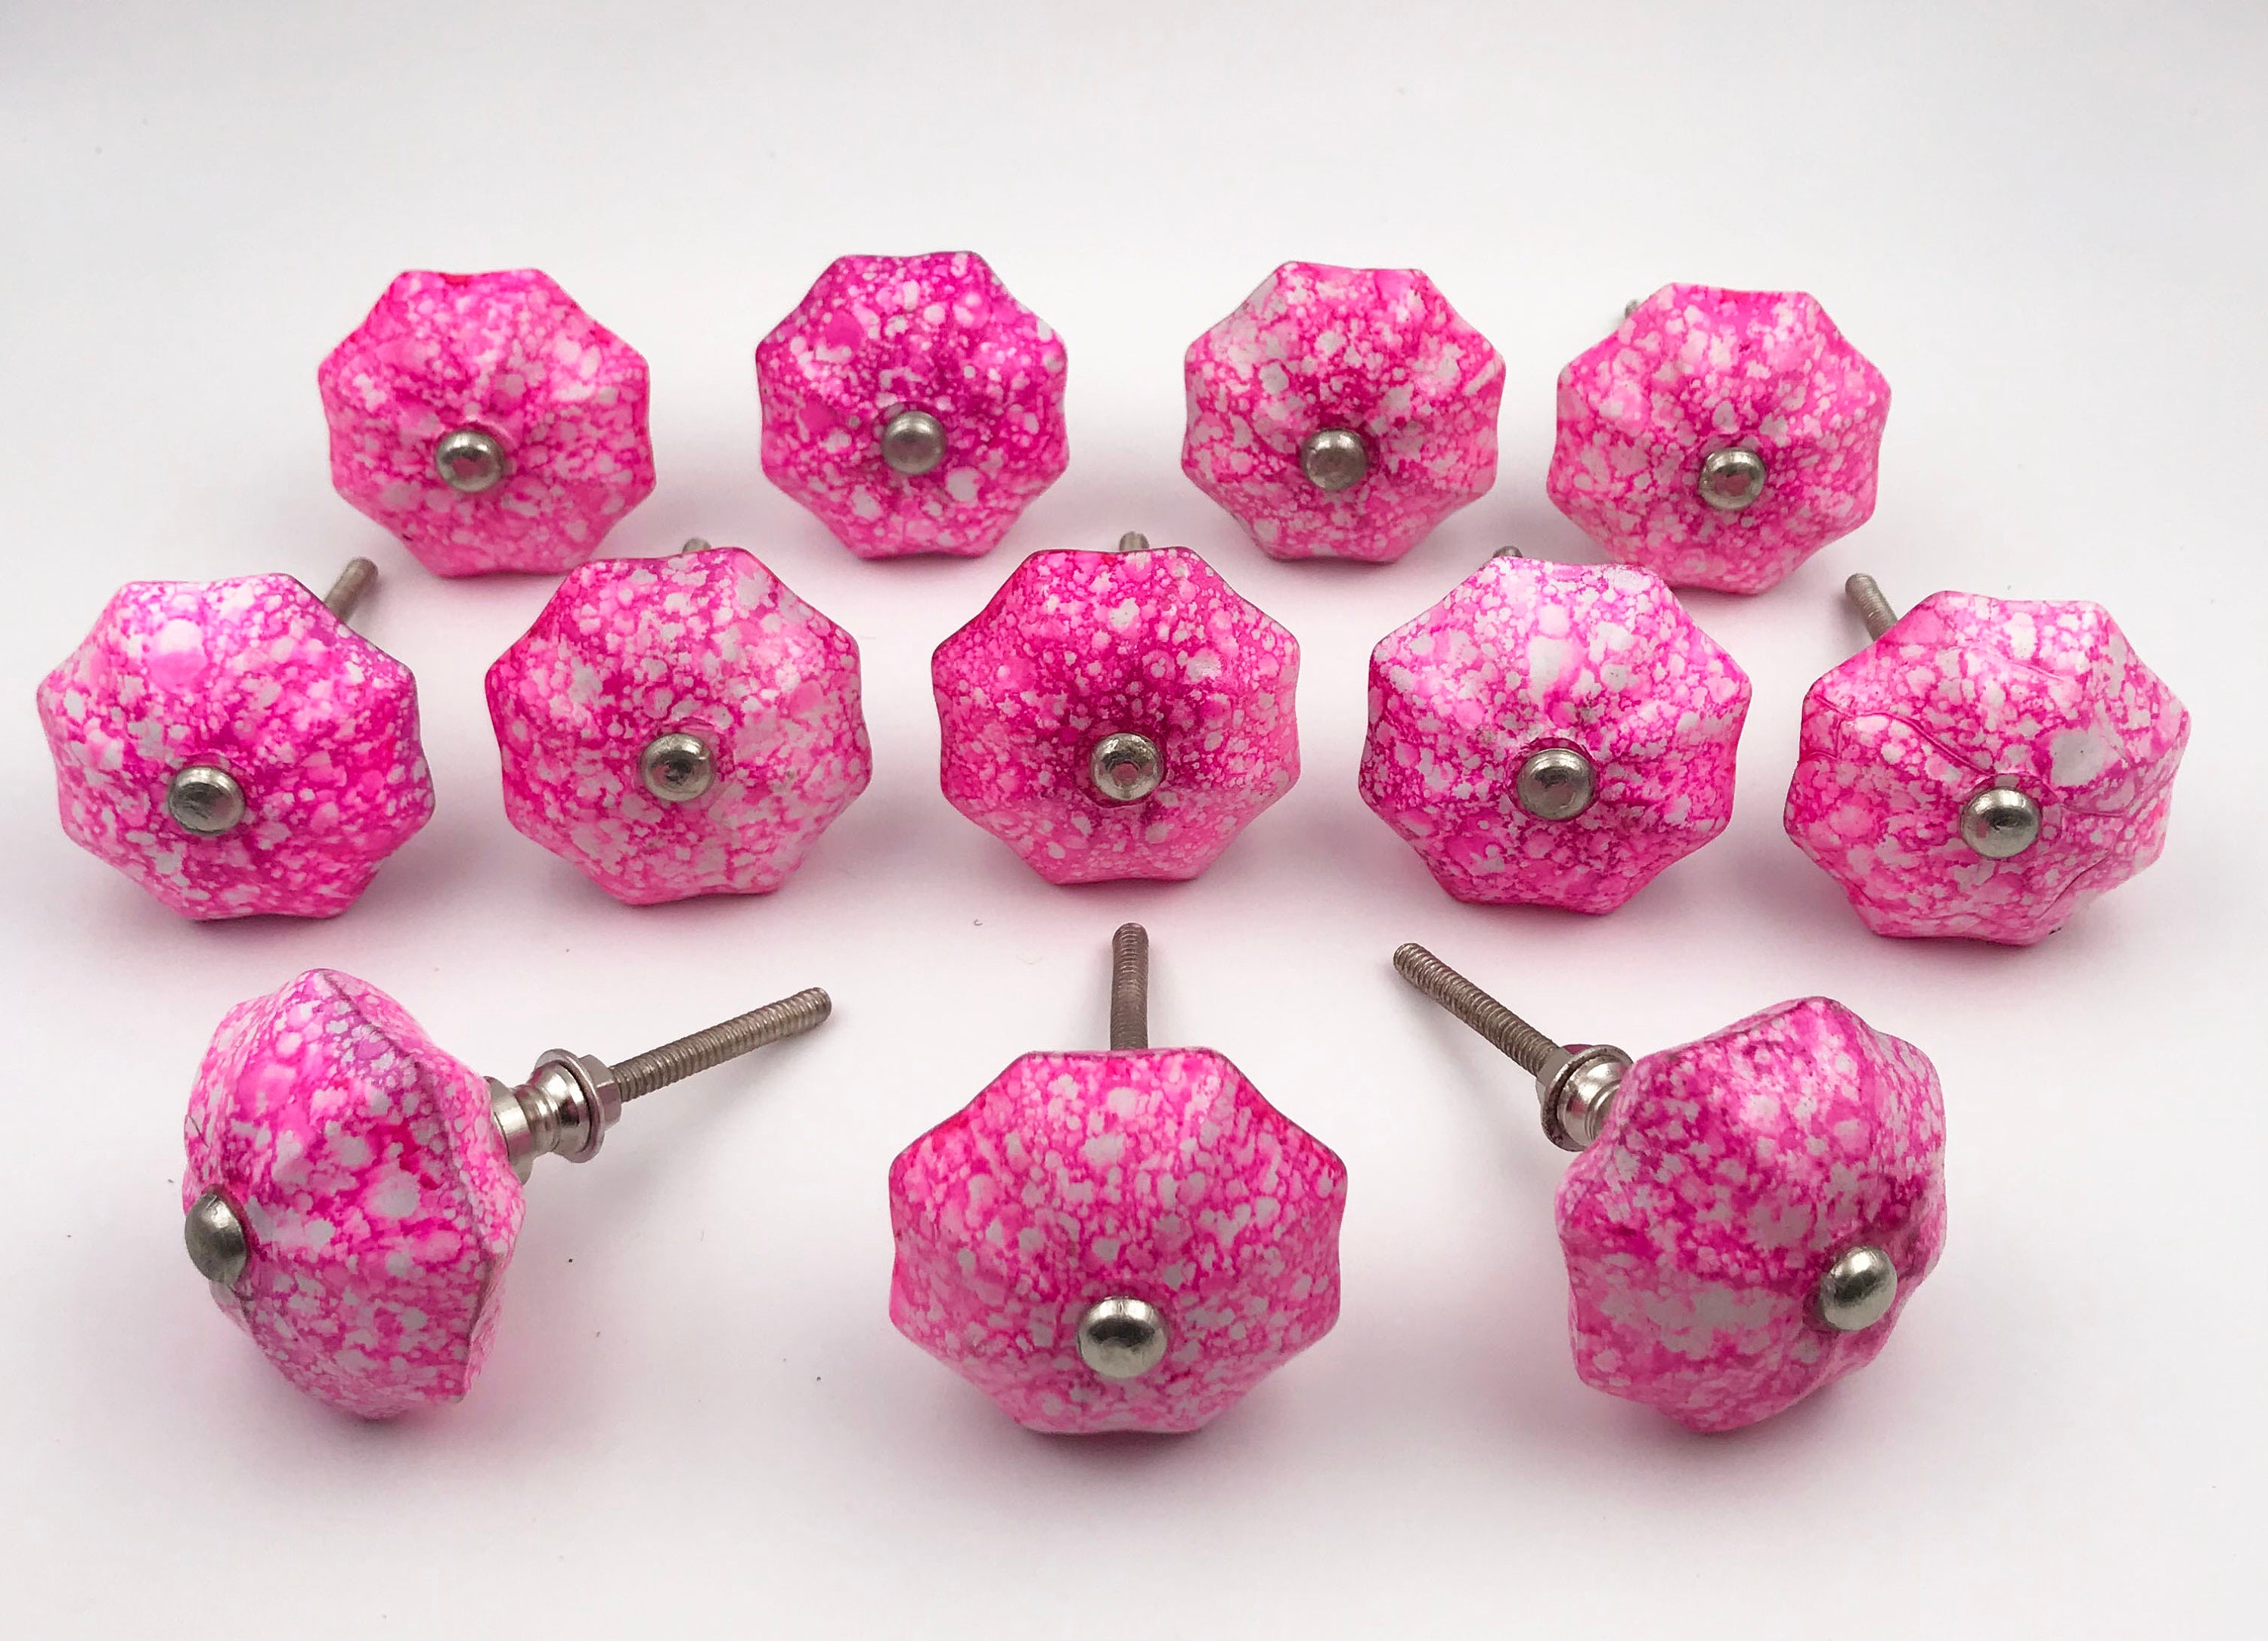 Hot Pink With Some White, Glass Knob, Cabinet Pull, Drawer Pull, Furniture  Knob   Set Of 12, M10Bulk